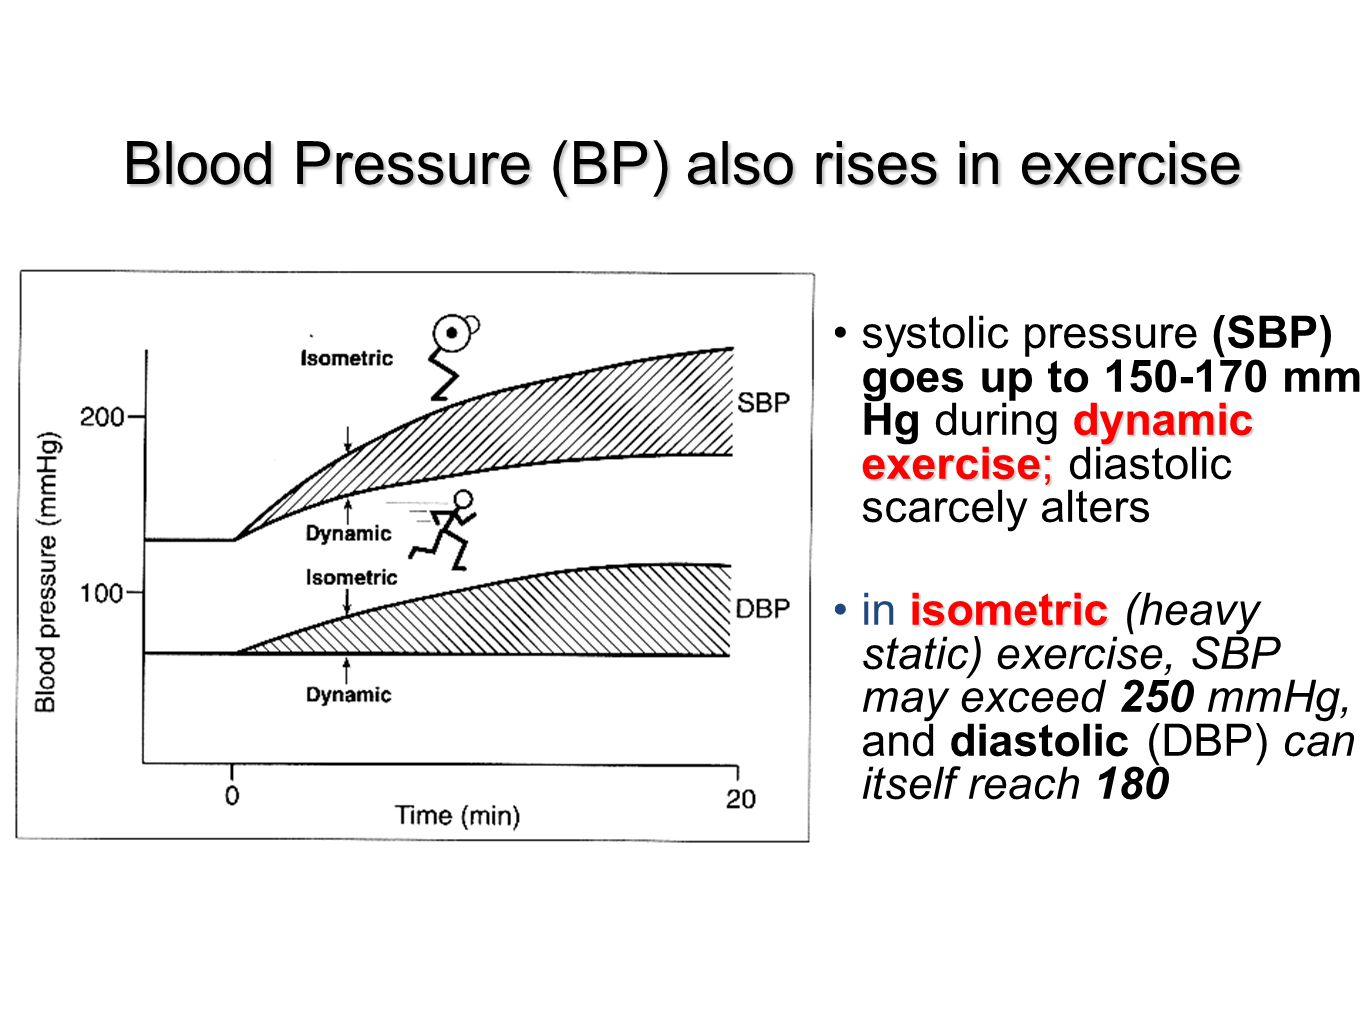 Blood Pressure (BP) also rises in exercise dynamic exercise;systolic pressure (SBP) goes up to 150-170 mm Hg during dynamic exercise; diastolic scarce